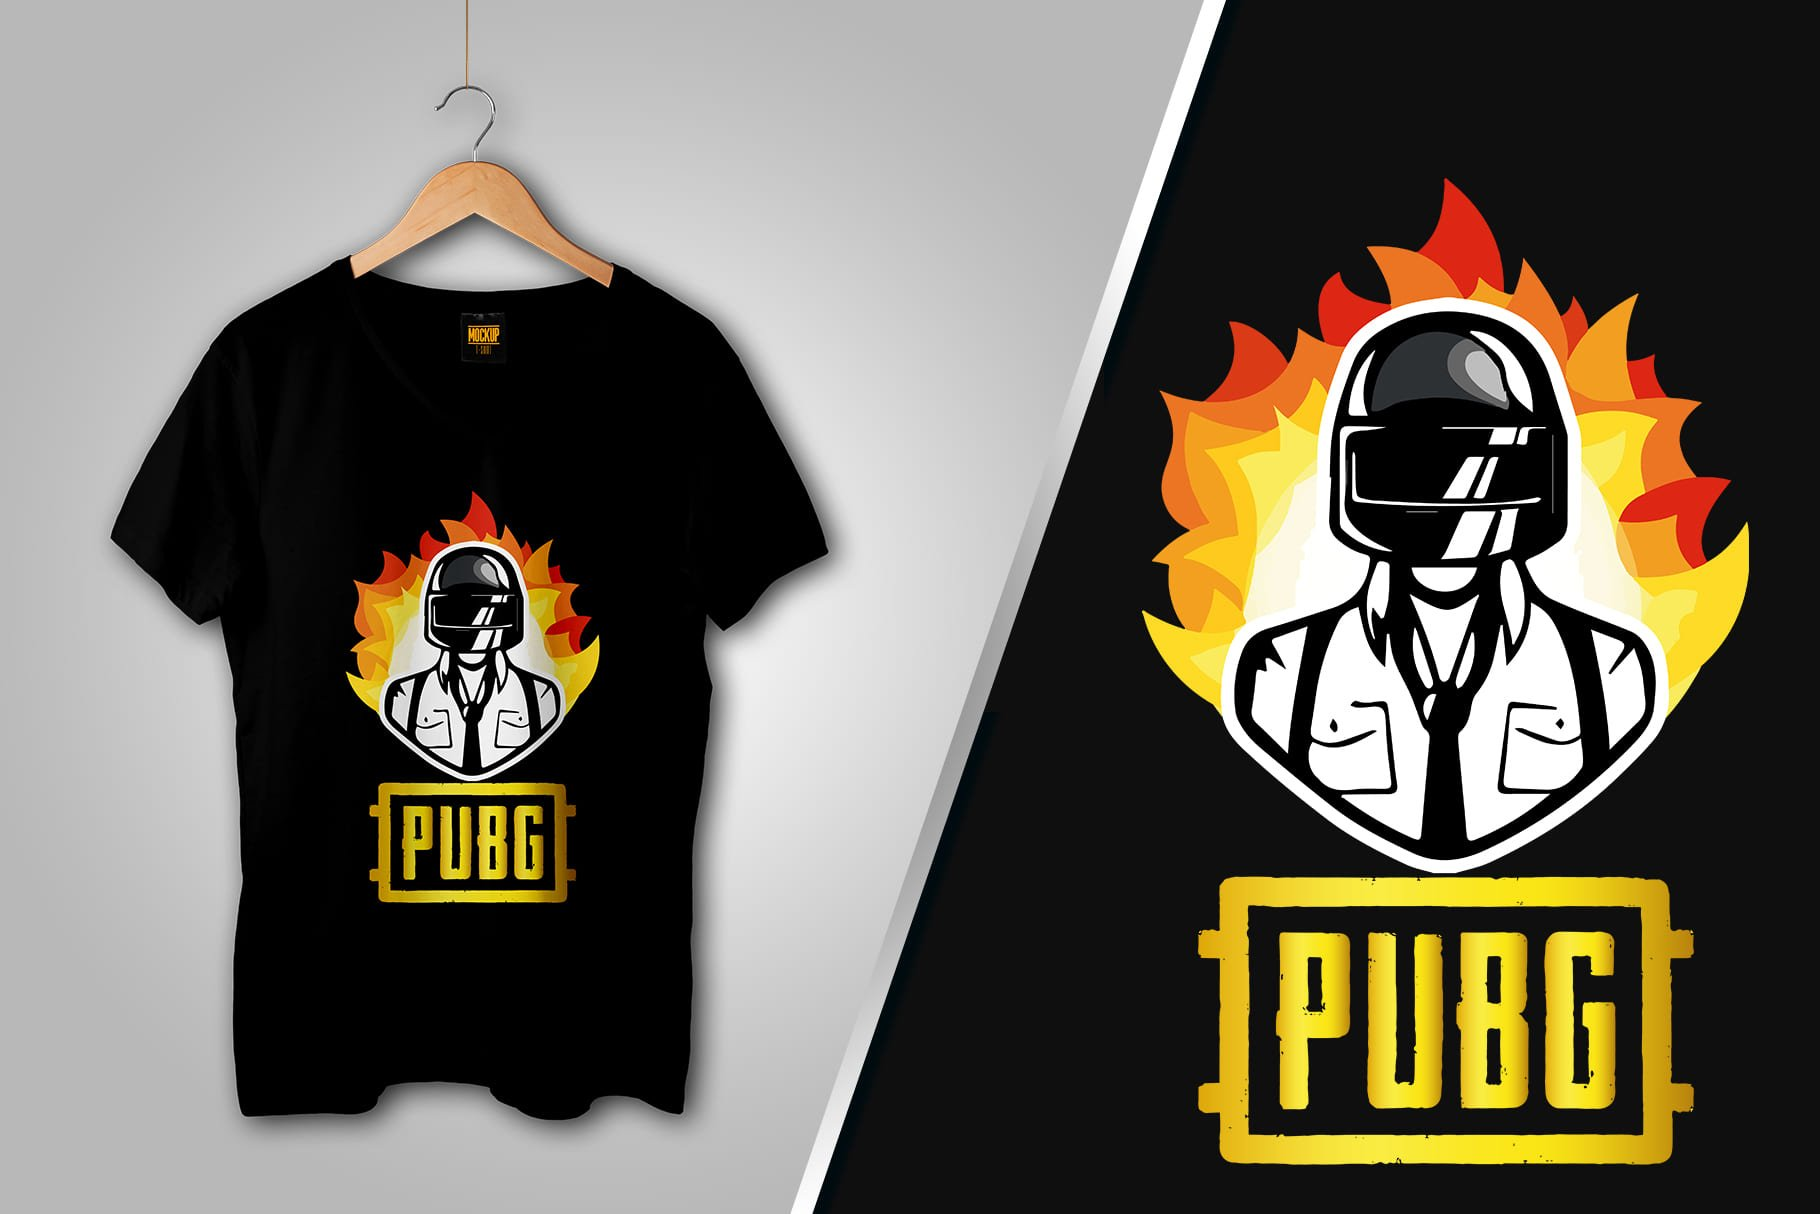 Black T-shirt with the head of a man in a helmet on fire.